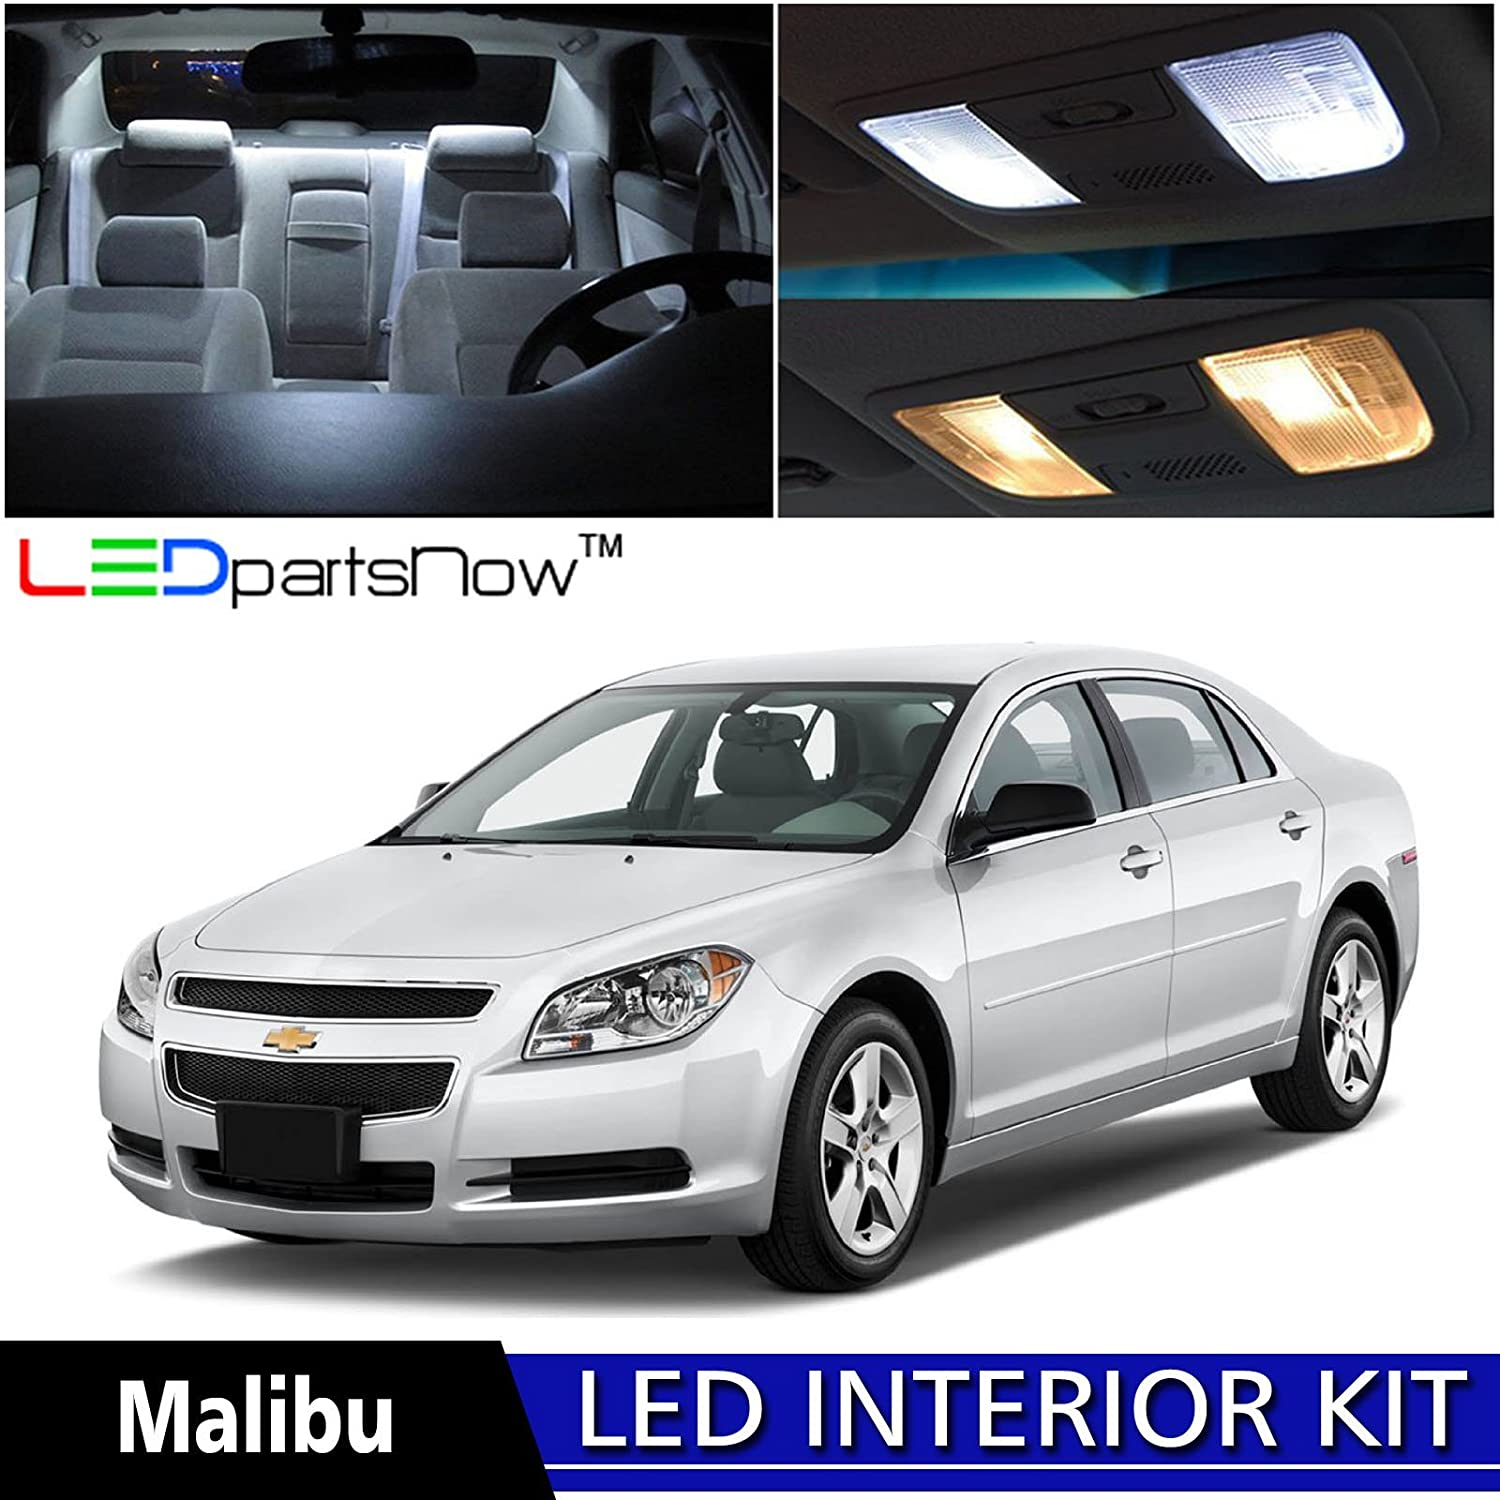 Chevy Malibu Interior Lights Wont Turn Off